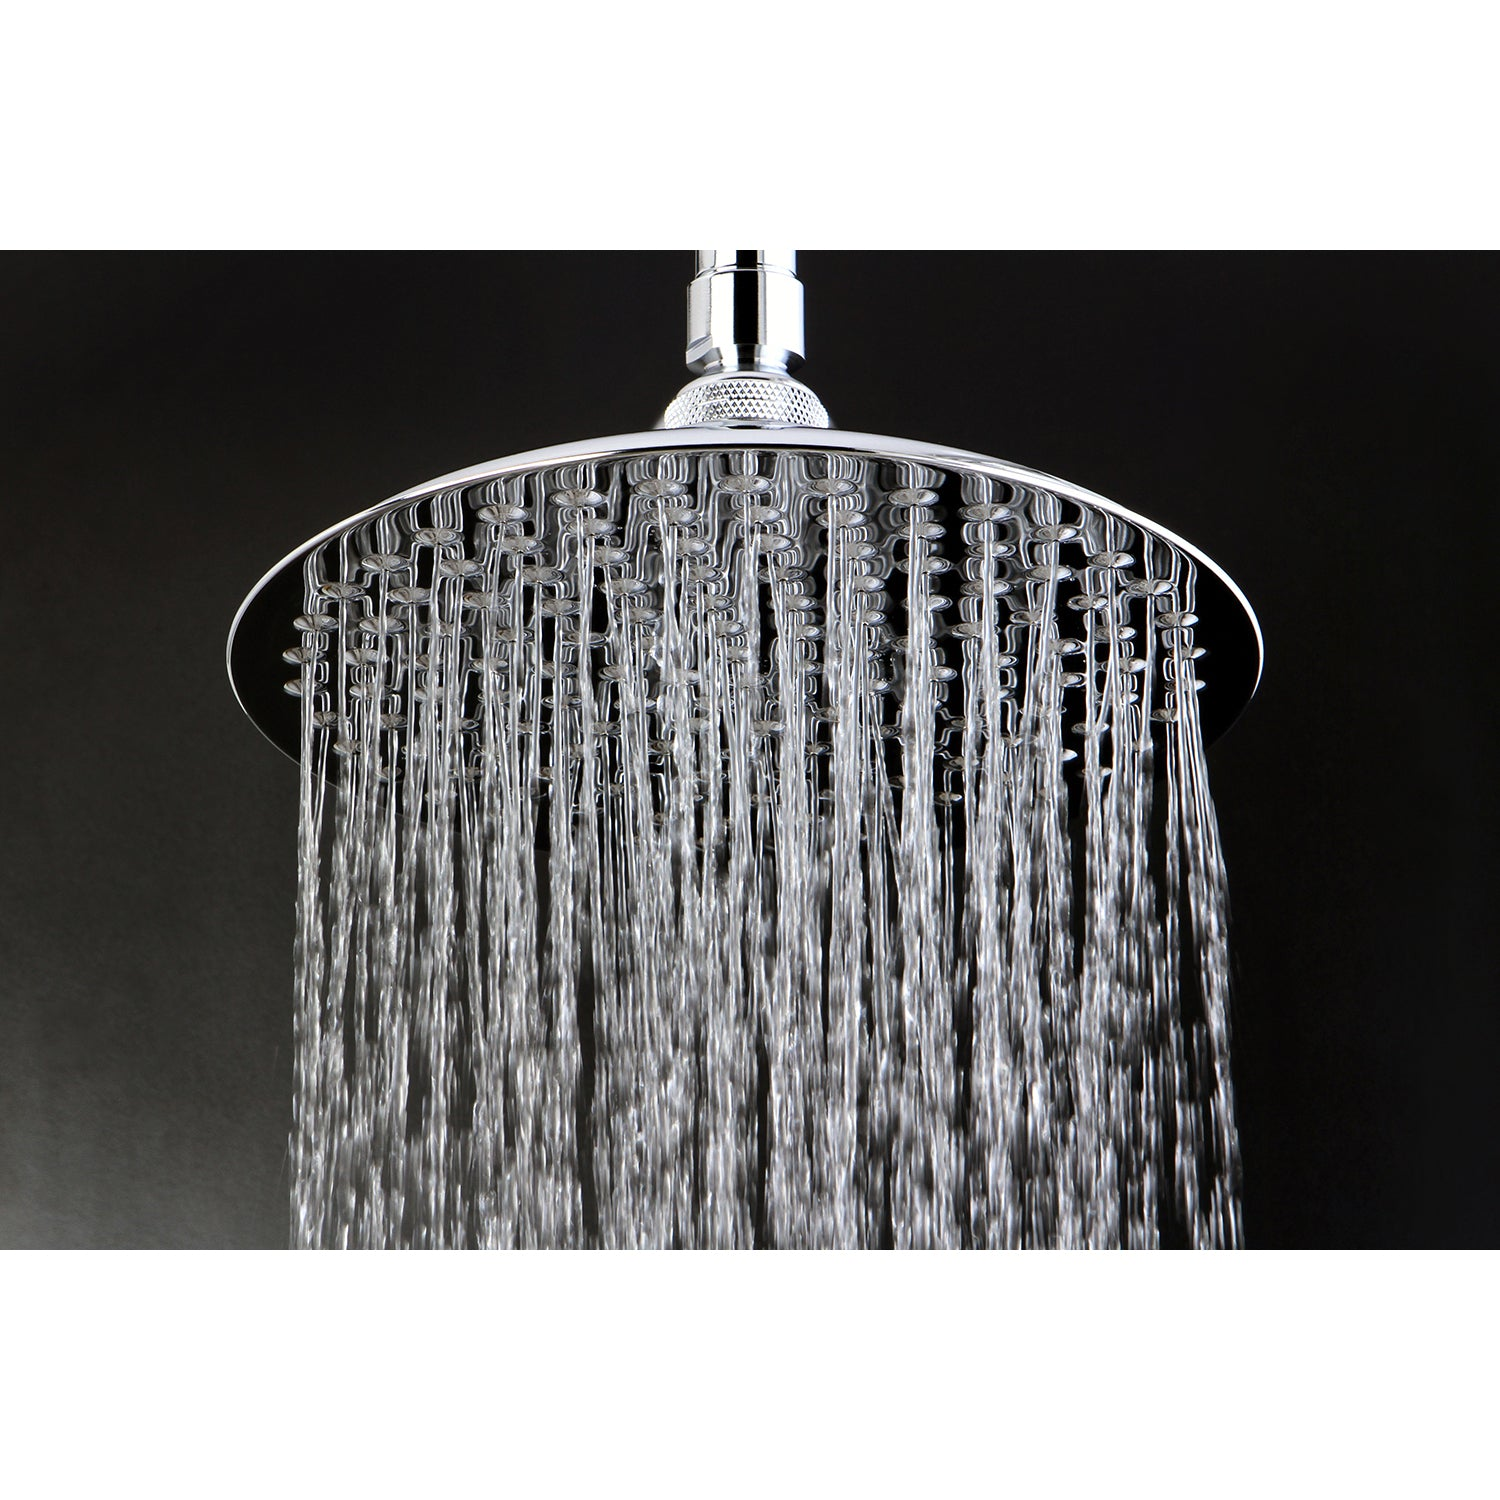 Benefits of A Rain Shower Head